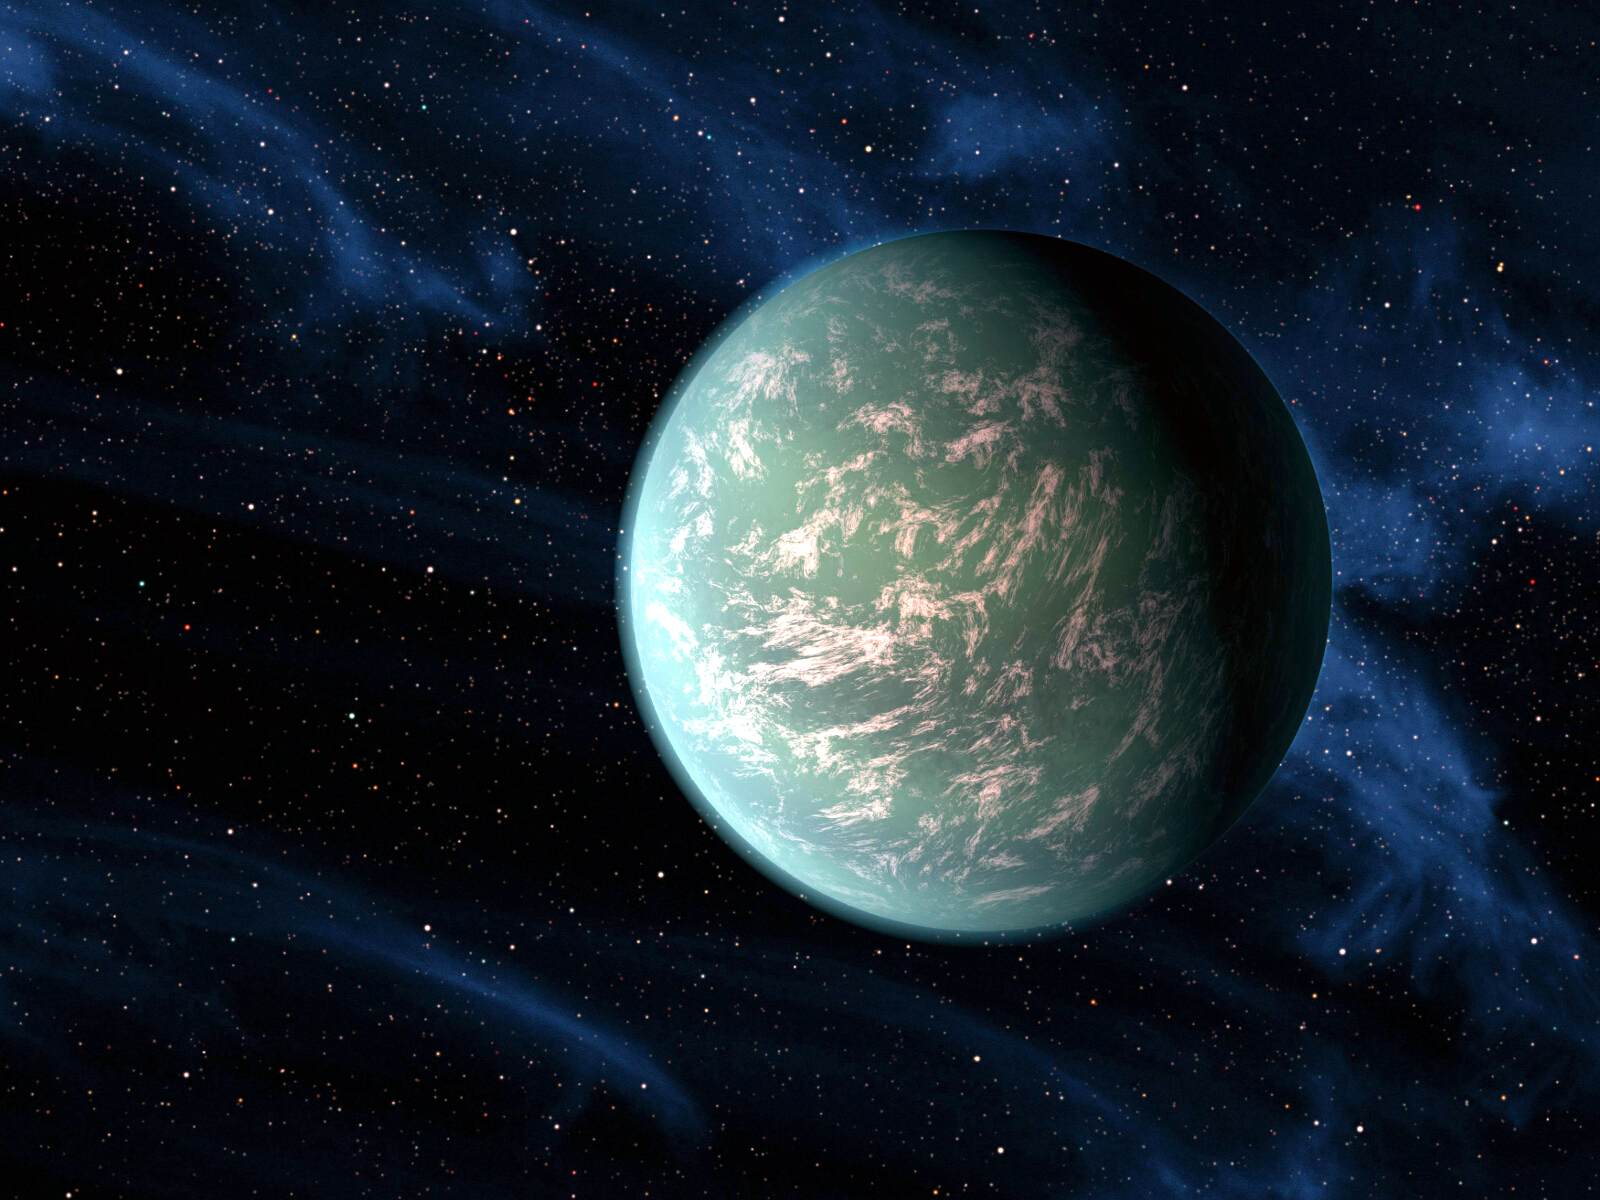 Nasa's distant planets that may be home to alien life